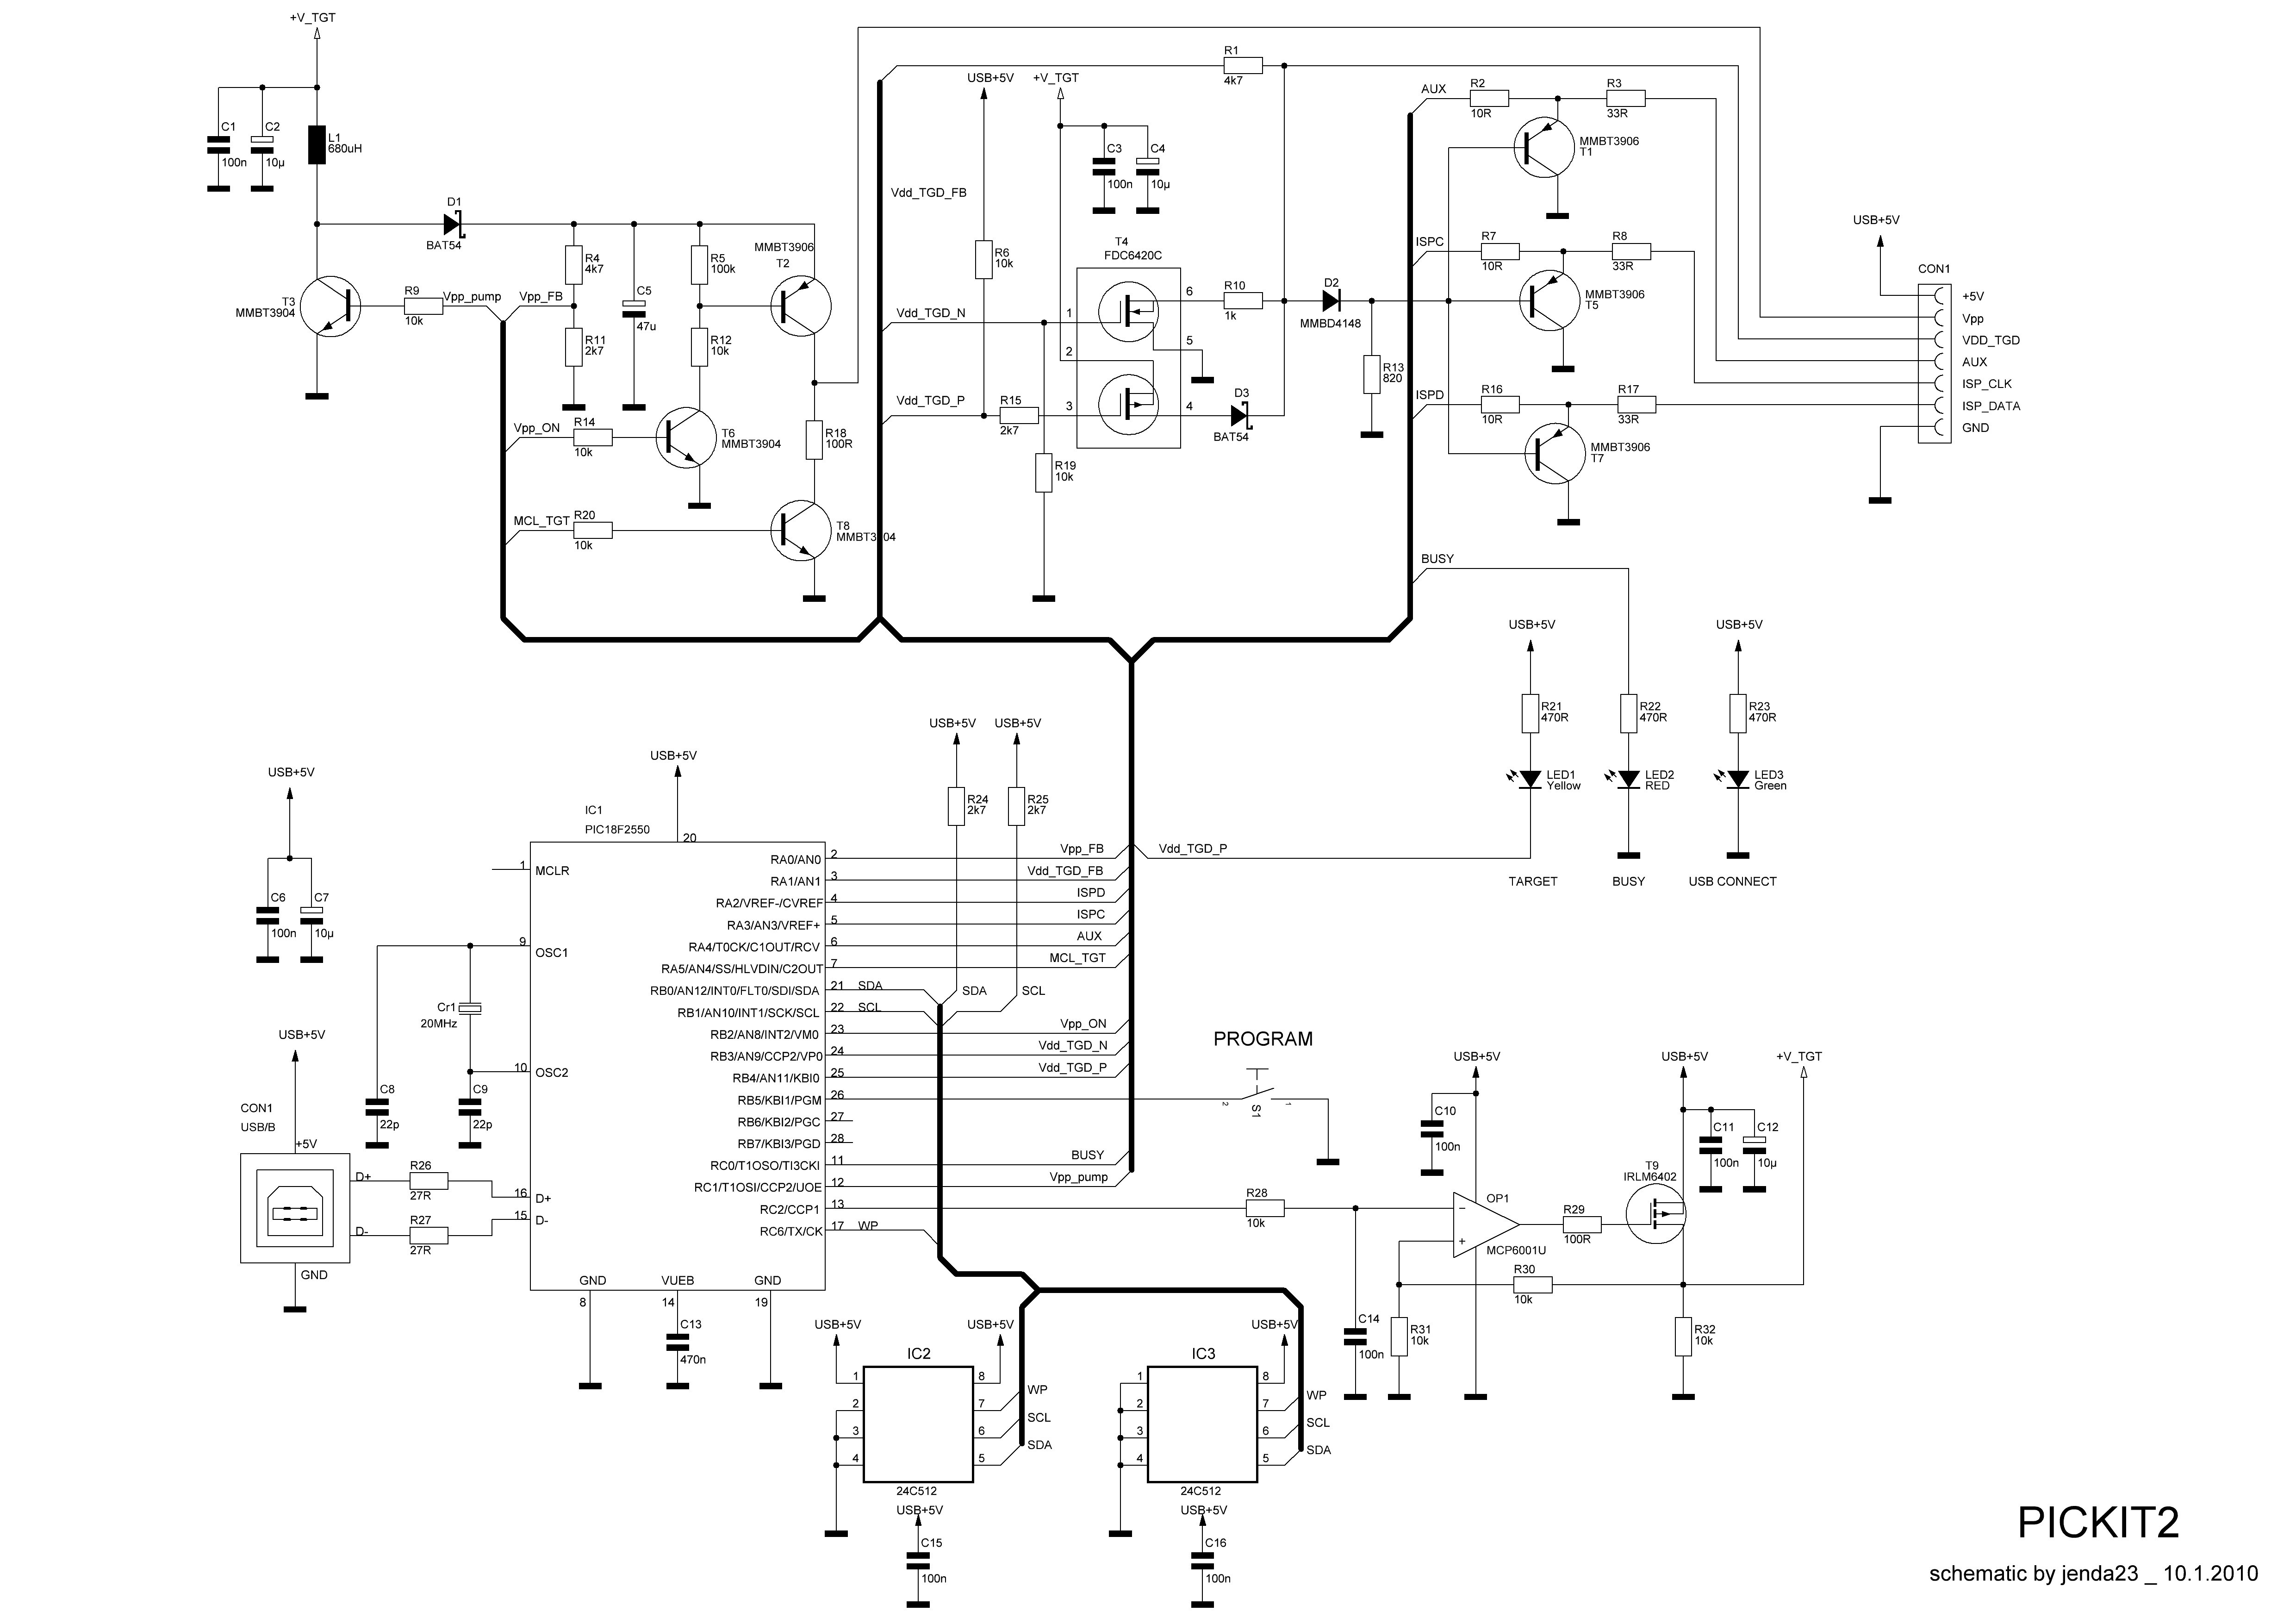 pickit3-schematic-inspirational-2-clone-of-pickit3-schematic Pickit Clone Schematic on eeprom programmer schematic, camera schematic, ipad schematic, h bridge schematic, microcontroller schematic, avr schematic, usb schematic, blinking led schematic, eprom programmer schematic, breadboard schematic, arduino schematic,